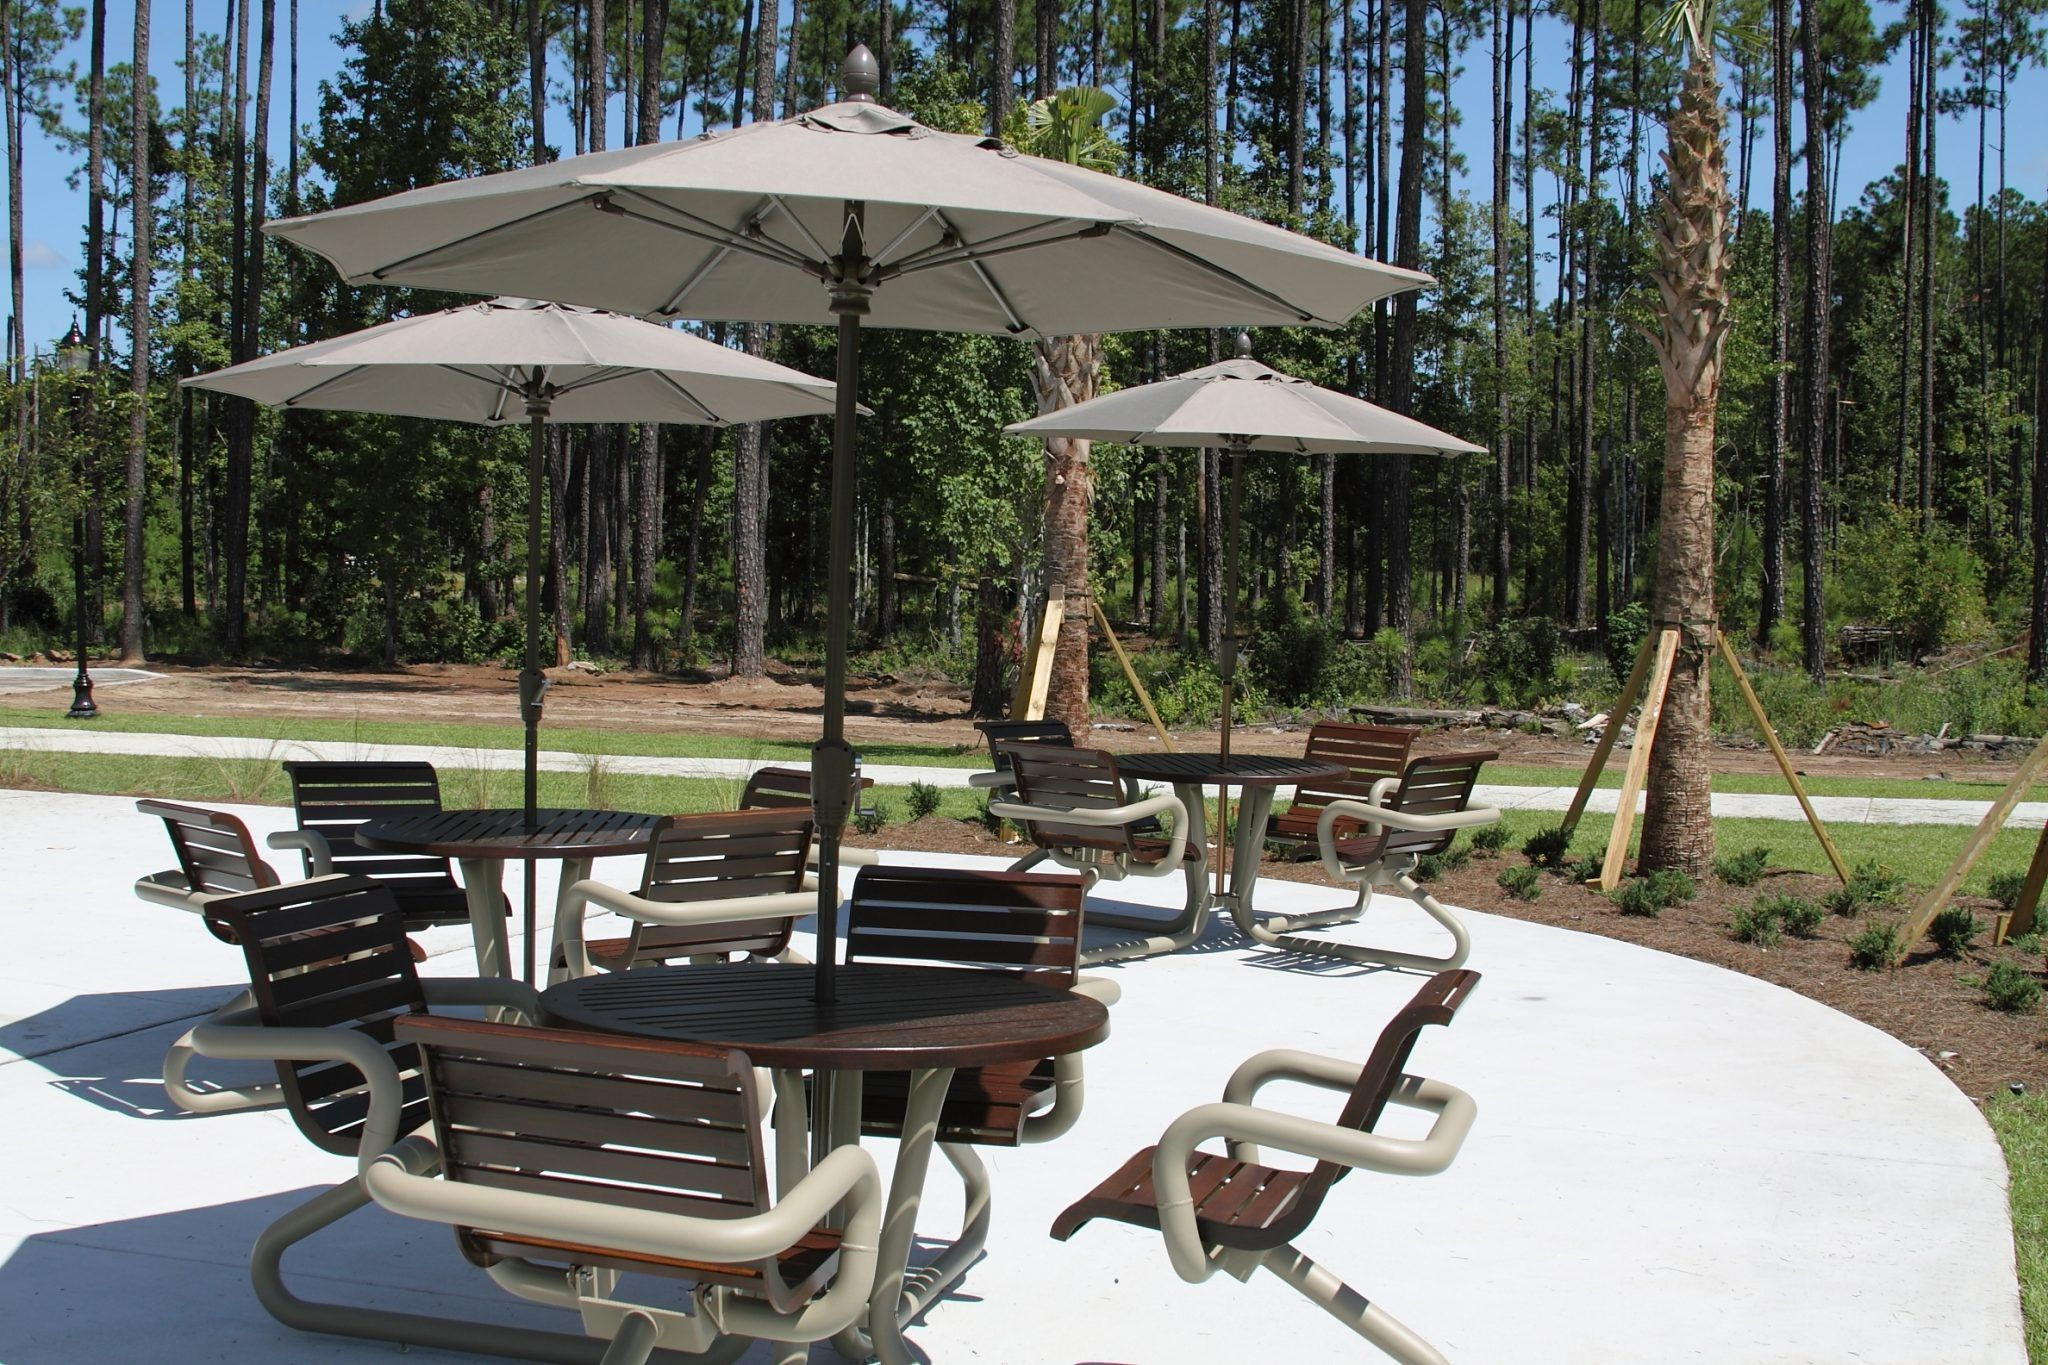 Dining sets with umbrellas on an outdoor patio